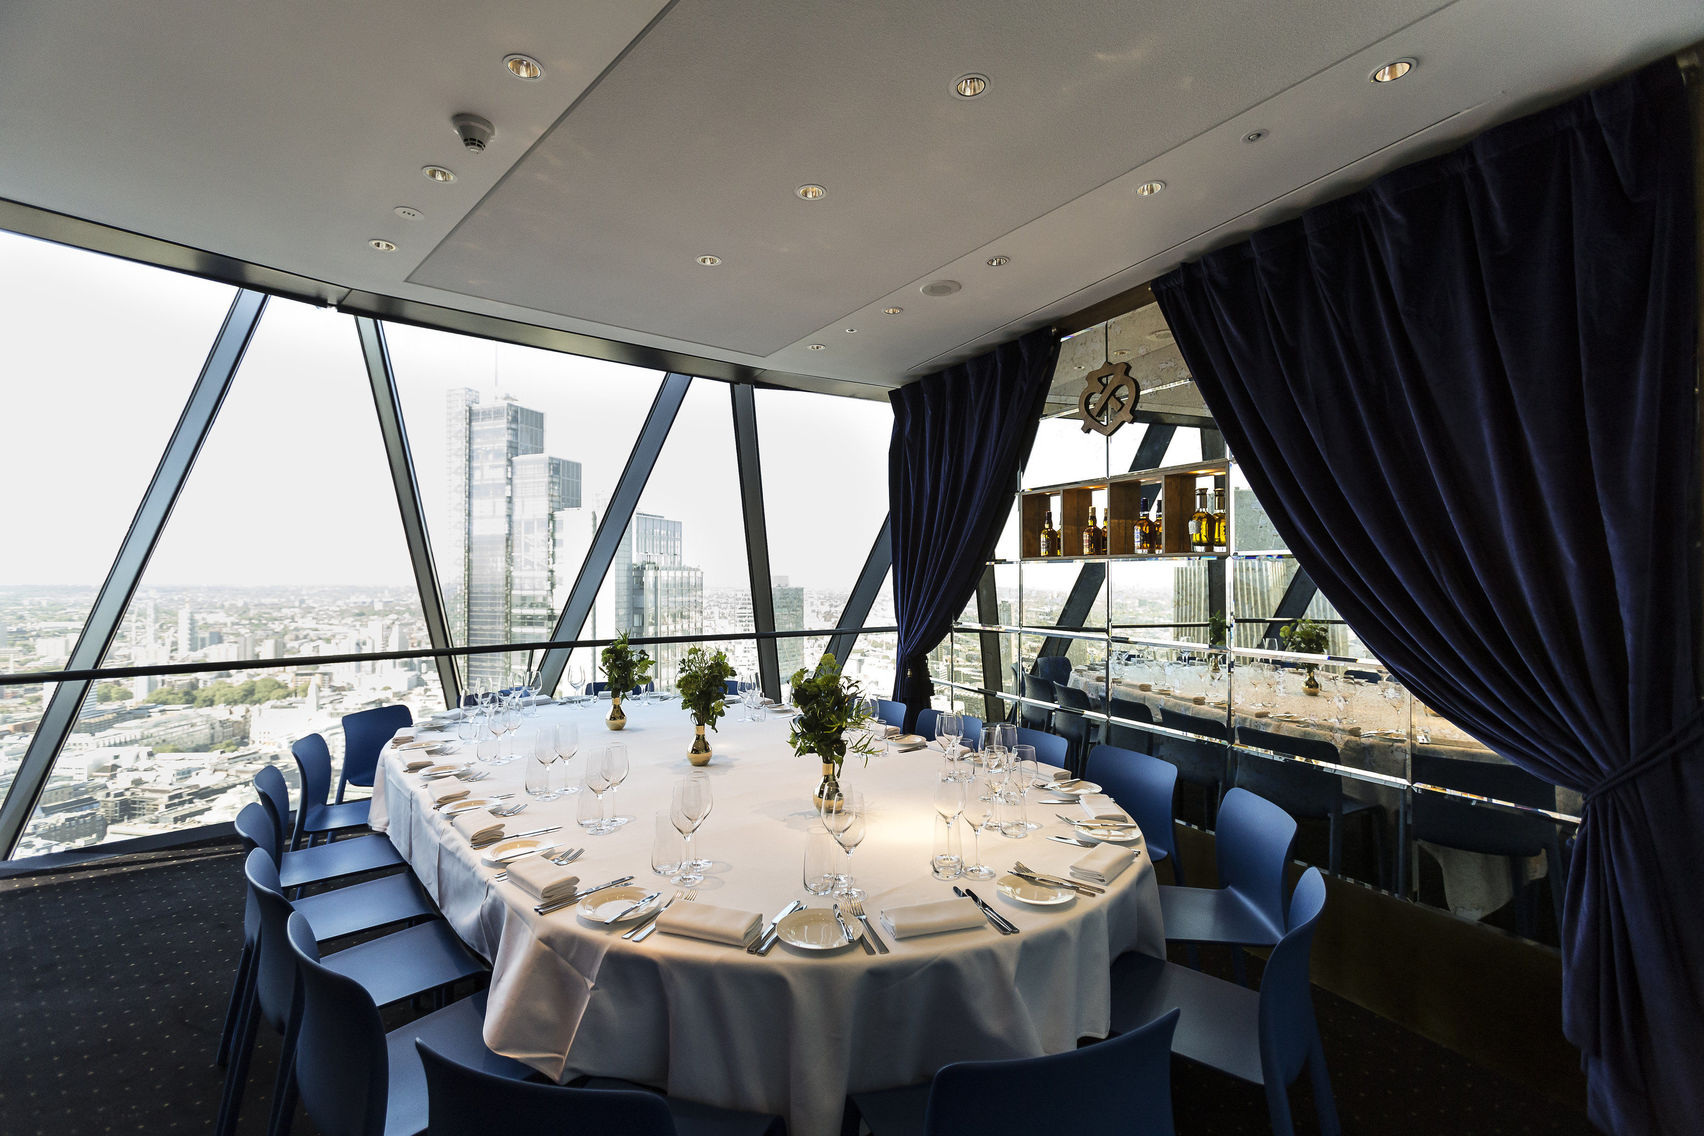 A room in the Gherkin with views of the London skyline